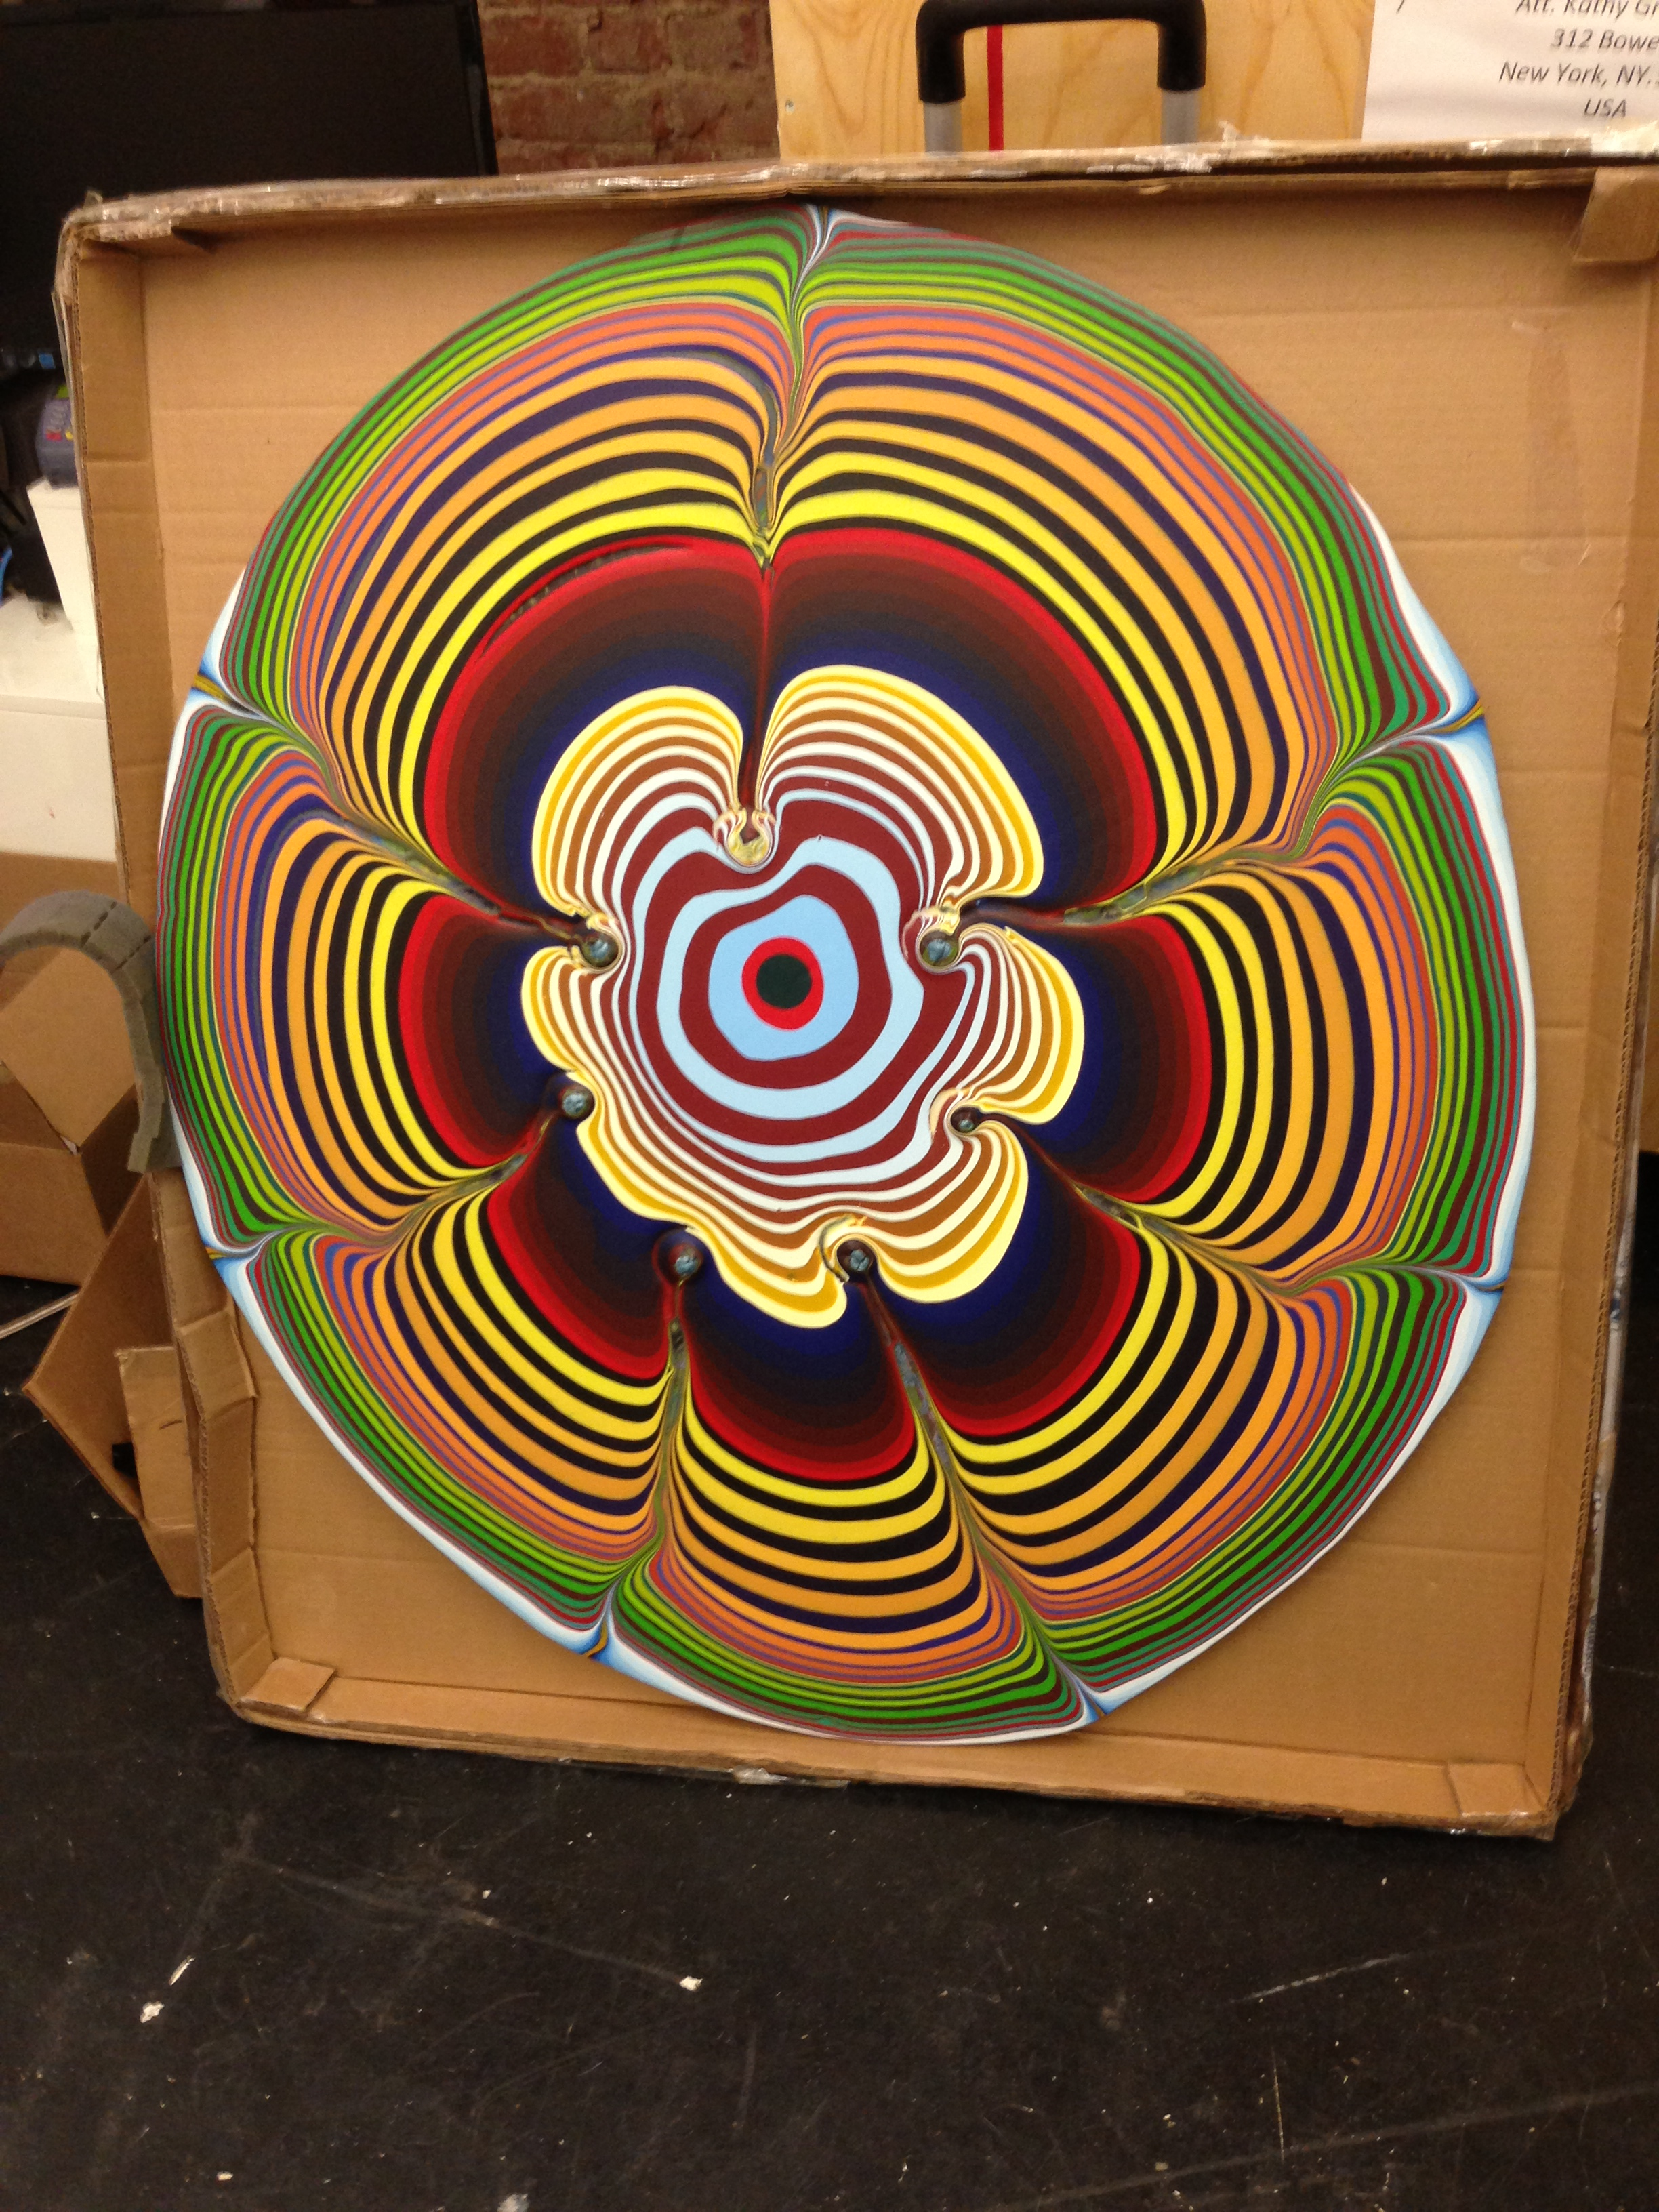 """One of Holton Rower's """"Poured Paintings"""" at The Hole. He is truly a fave of mine."""